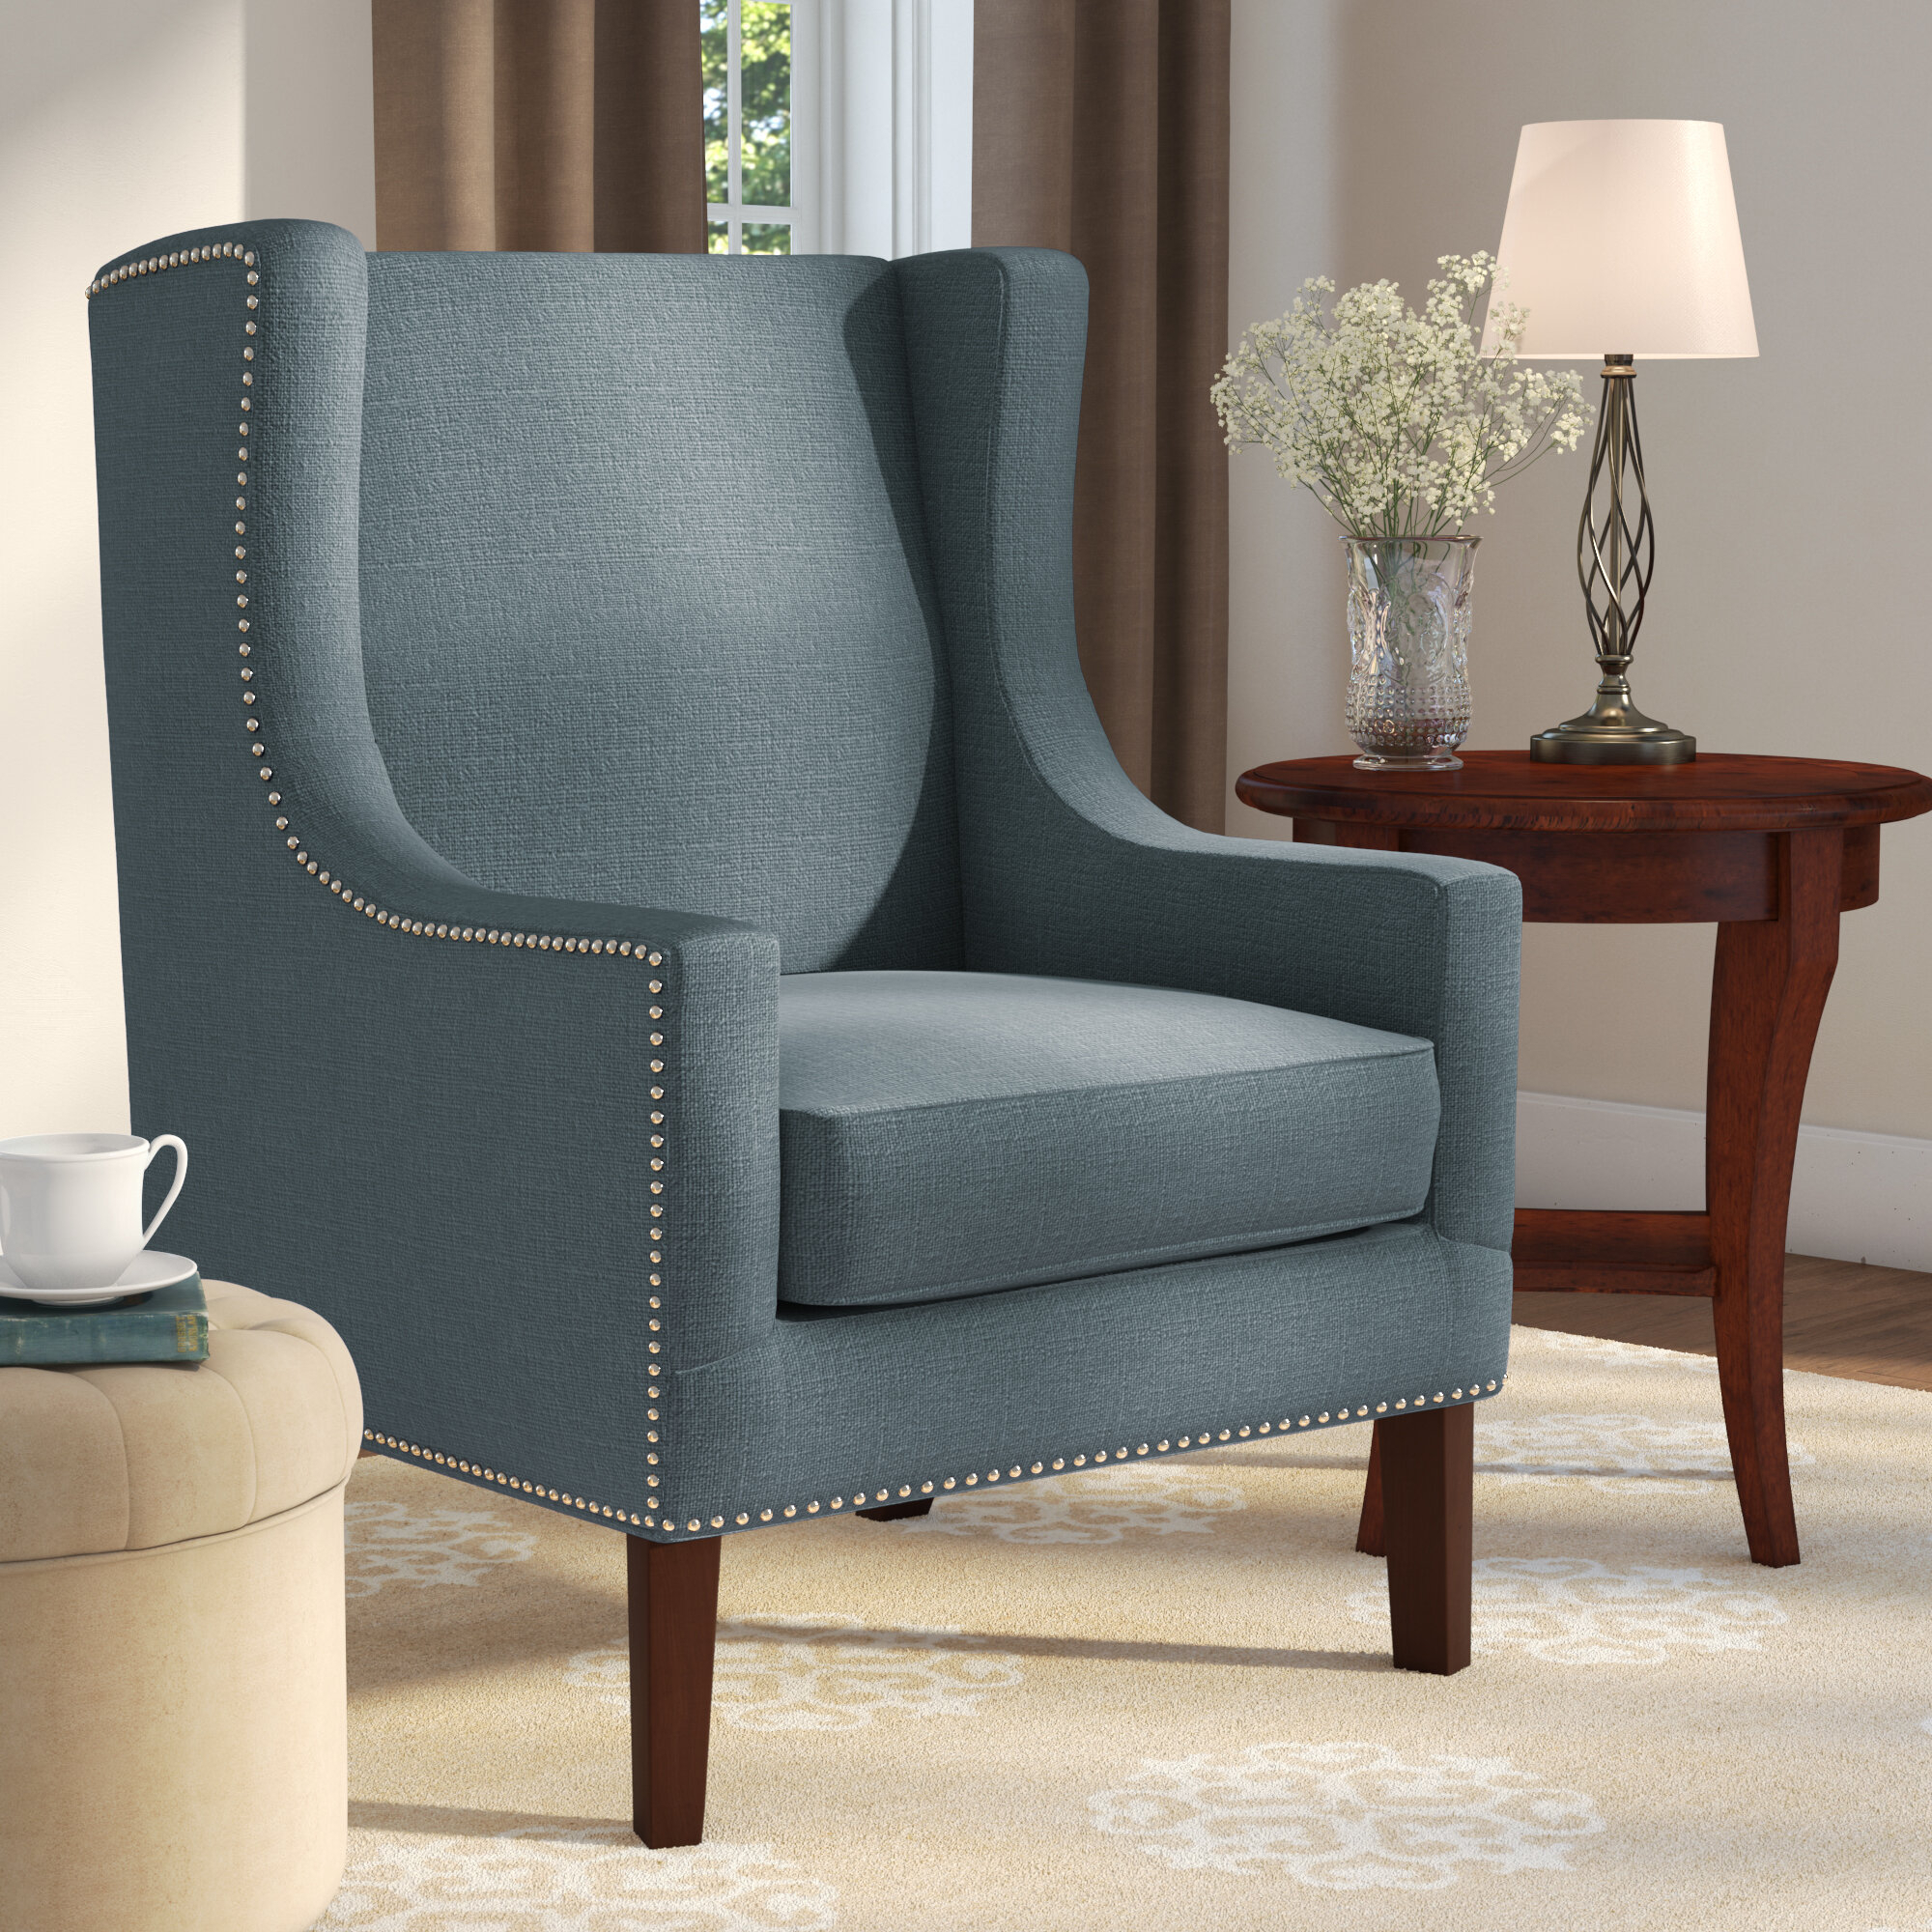 Blue Wingback Accent Chairs You'Ll Love In 2021 | Wayfair Regarding Chagnon Wingback Chairs (View 8 of 15)